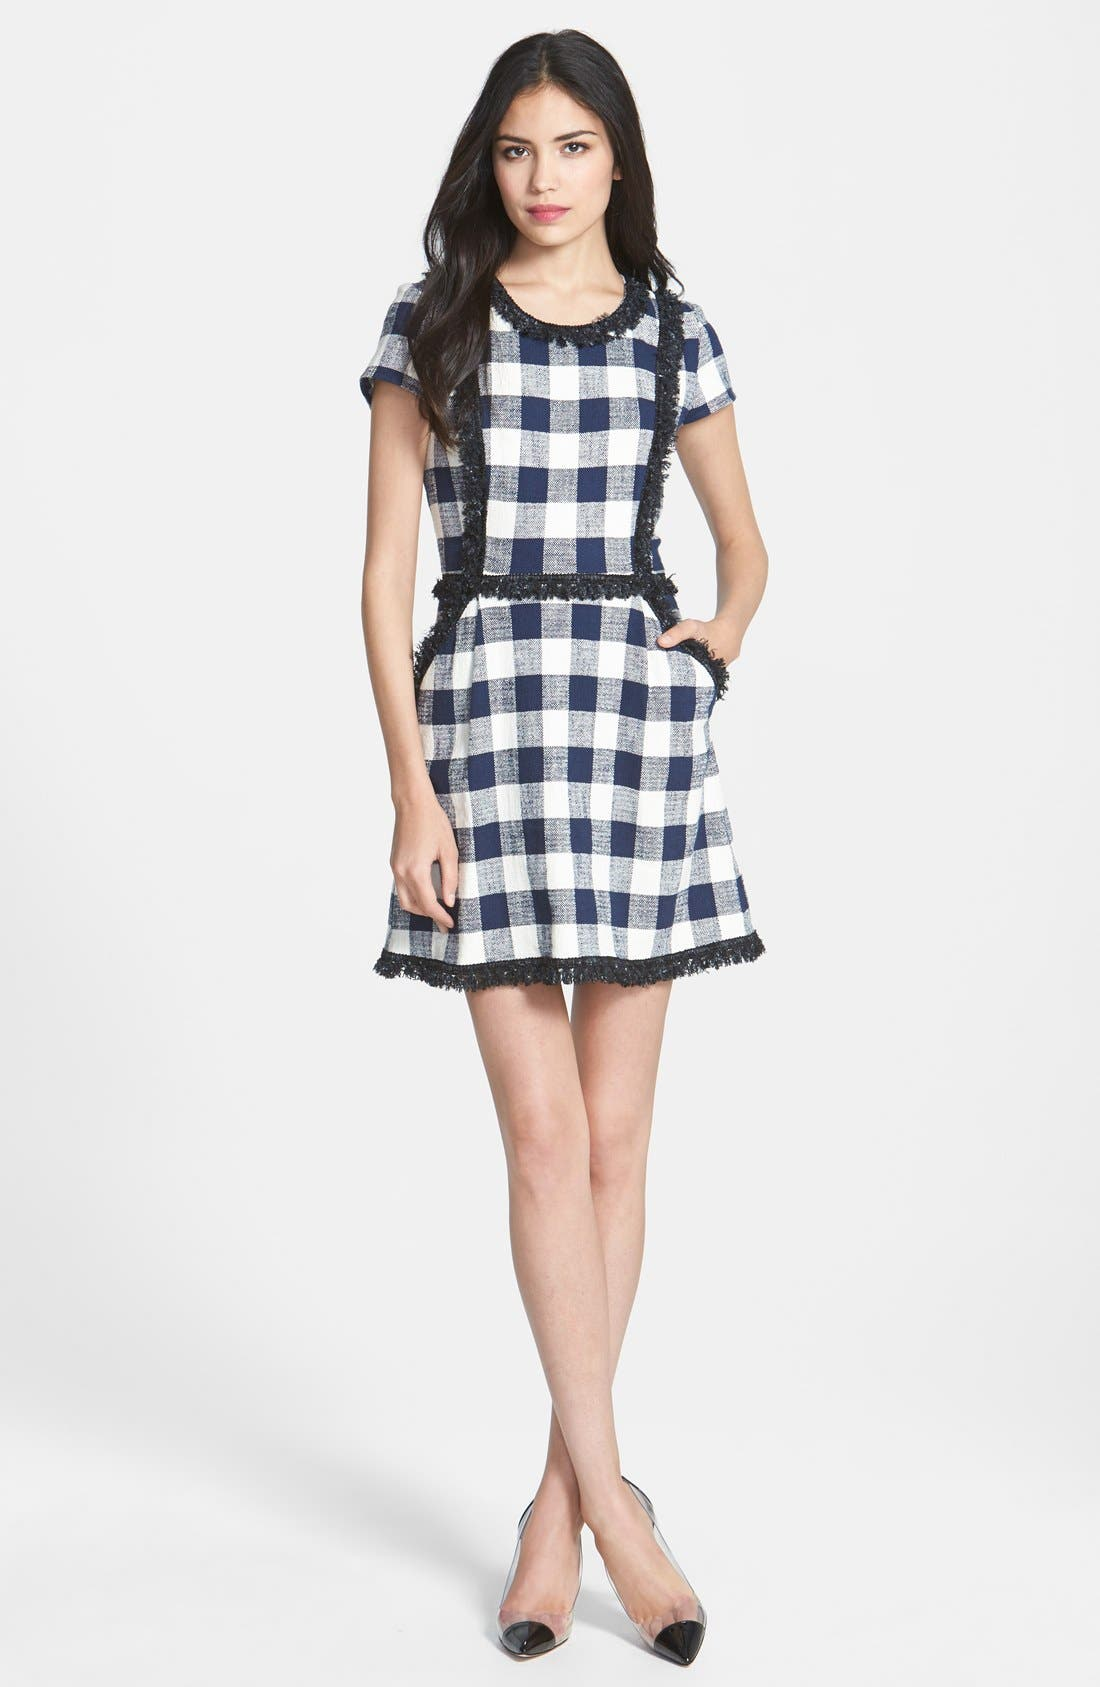 MILLY Woven A-Line Dress, Main, color, 420